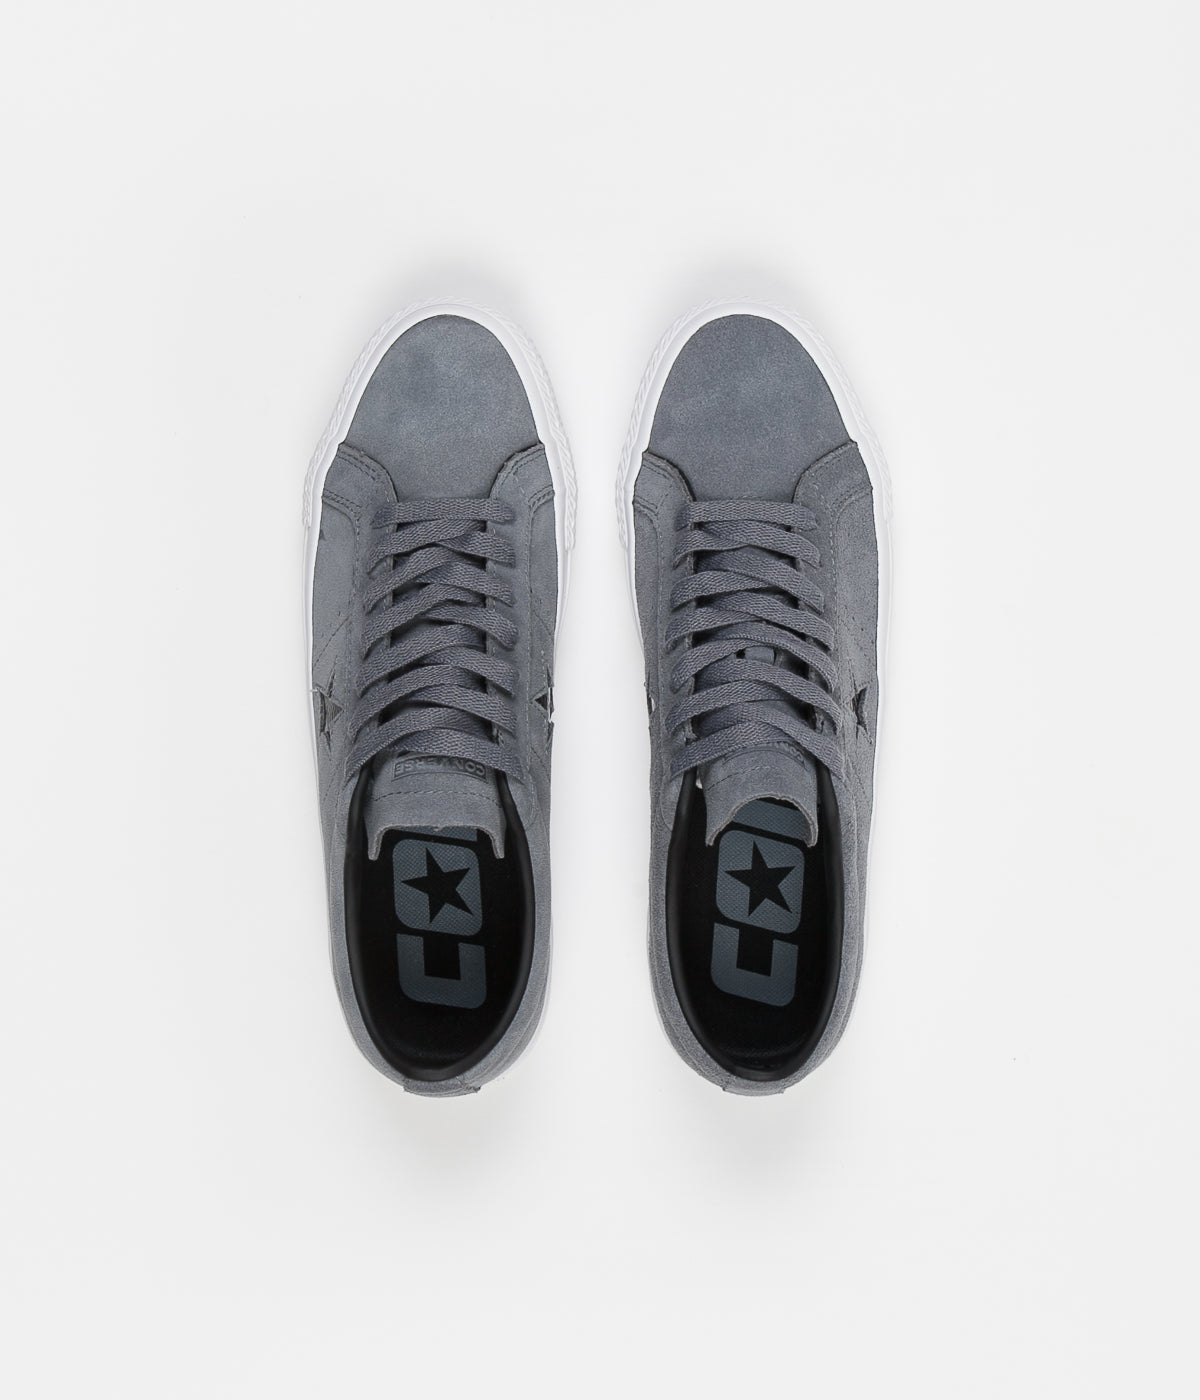 Converse One Star Pro Ox Shoes - Cool Grey   Black   White ... f3deb55f2